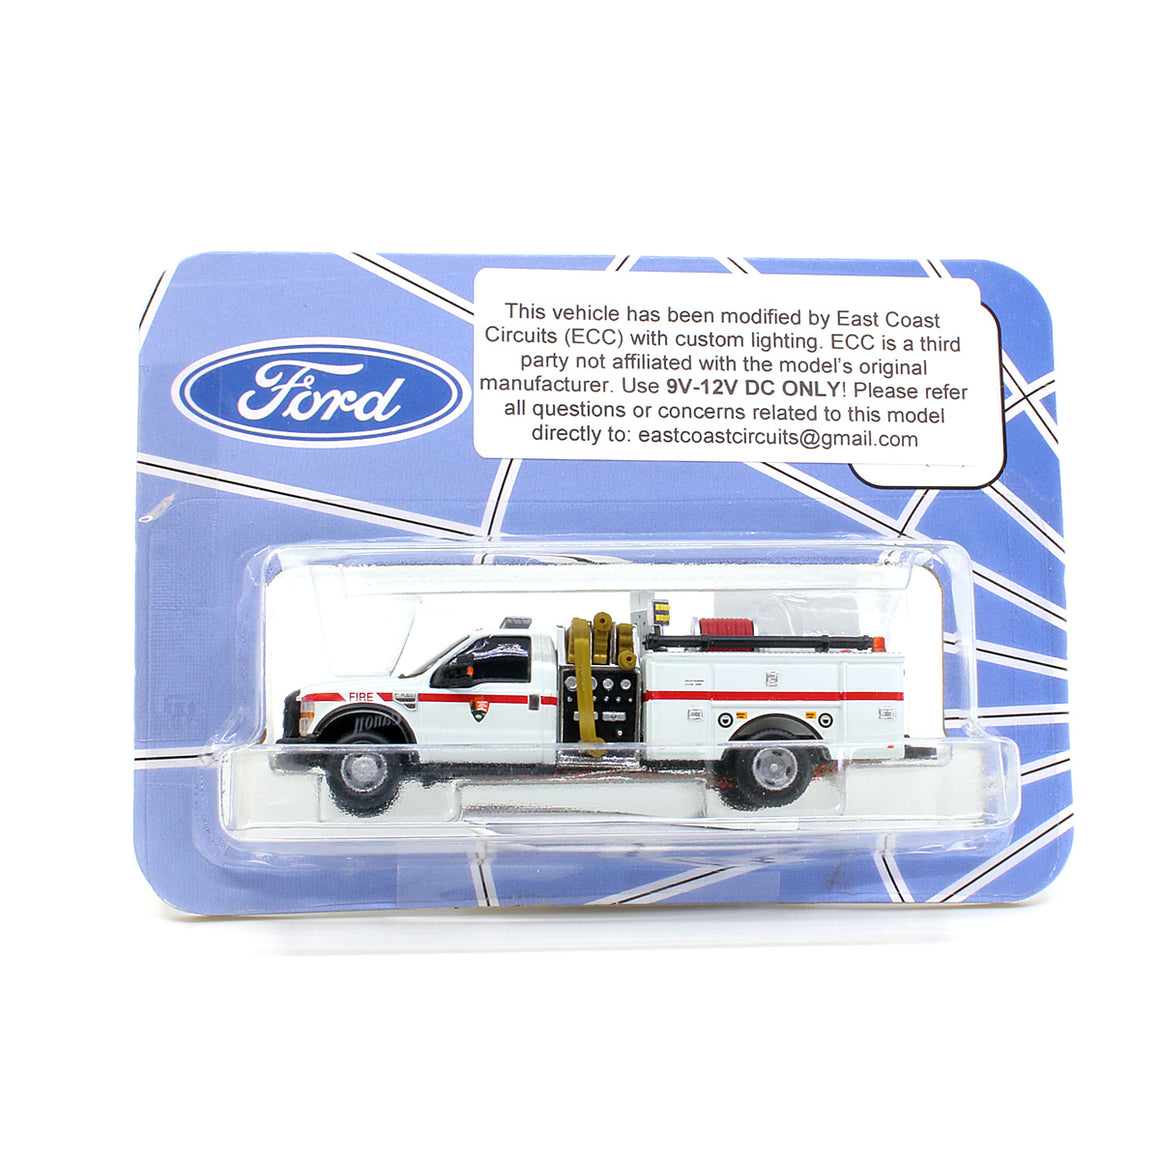 HO Scale: Lighted Ford F-550 - Mini Pumper Fire Truck - National Park Service